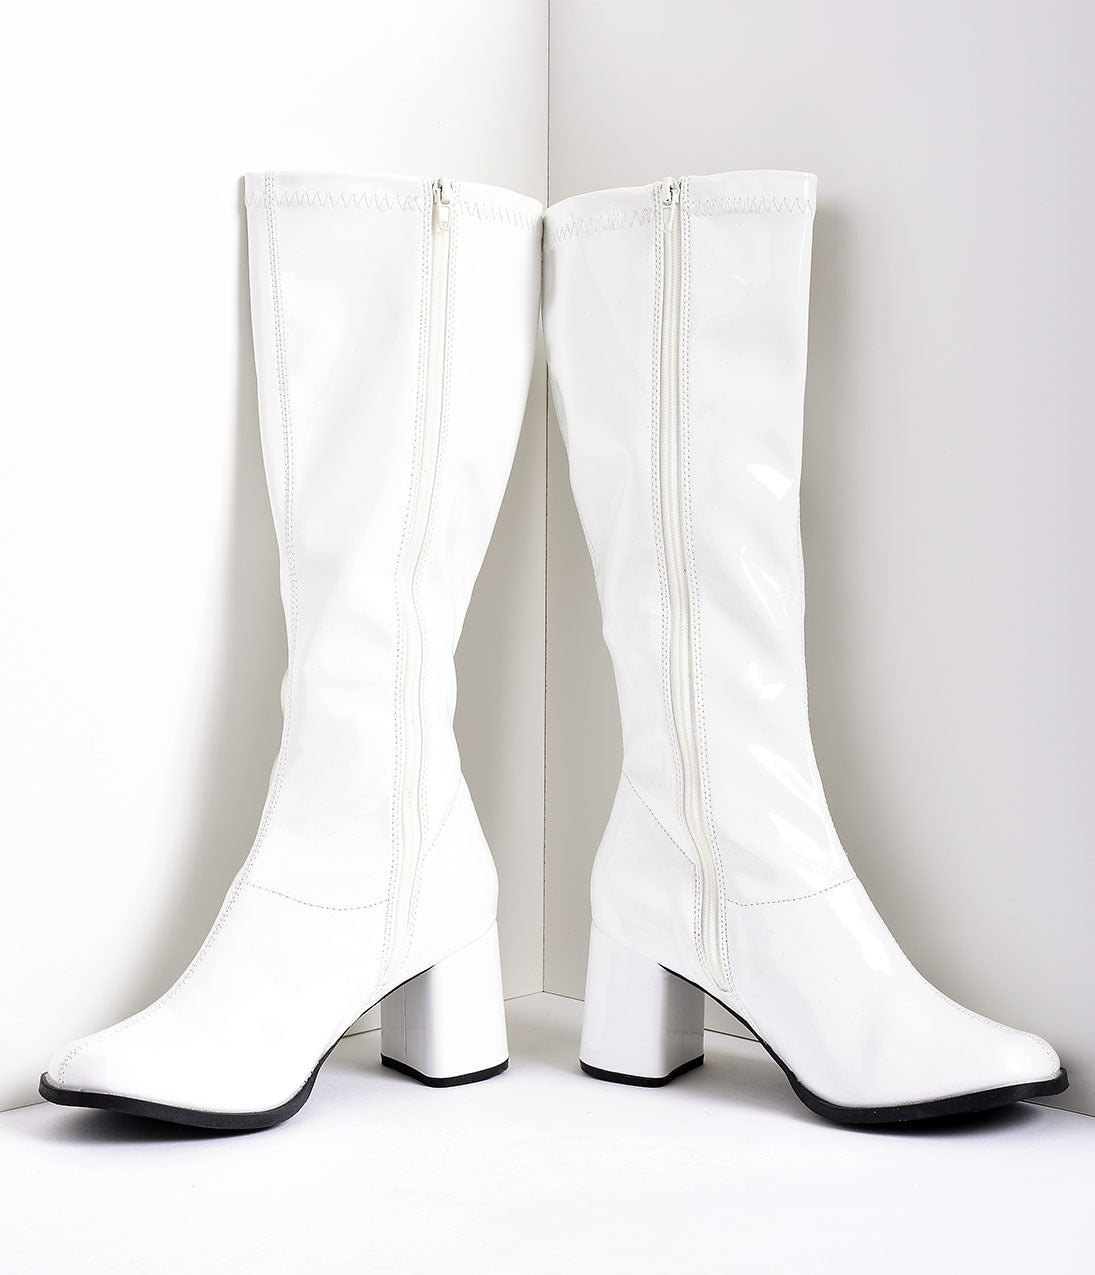 Vintage Heels, Retro Heels, Pumps, Shoes White Stretch Patent Knee High Go Go Boots $58.00 AT vintagedancer.com